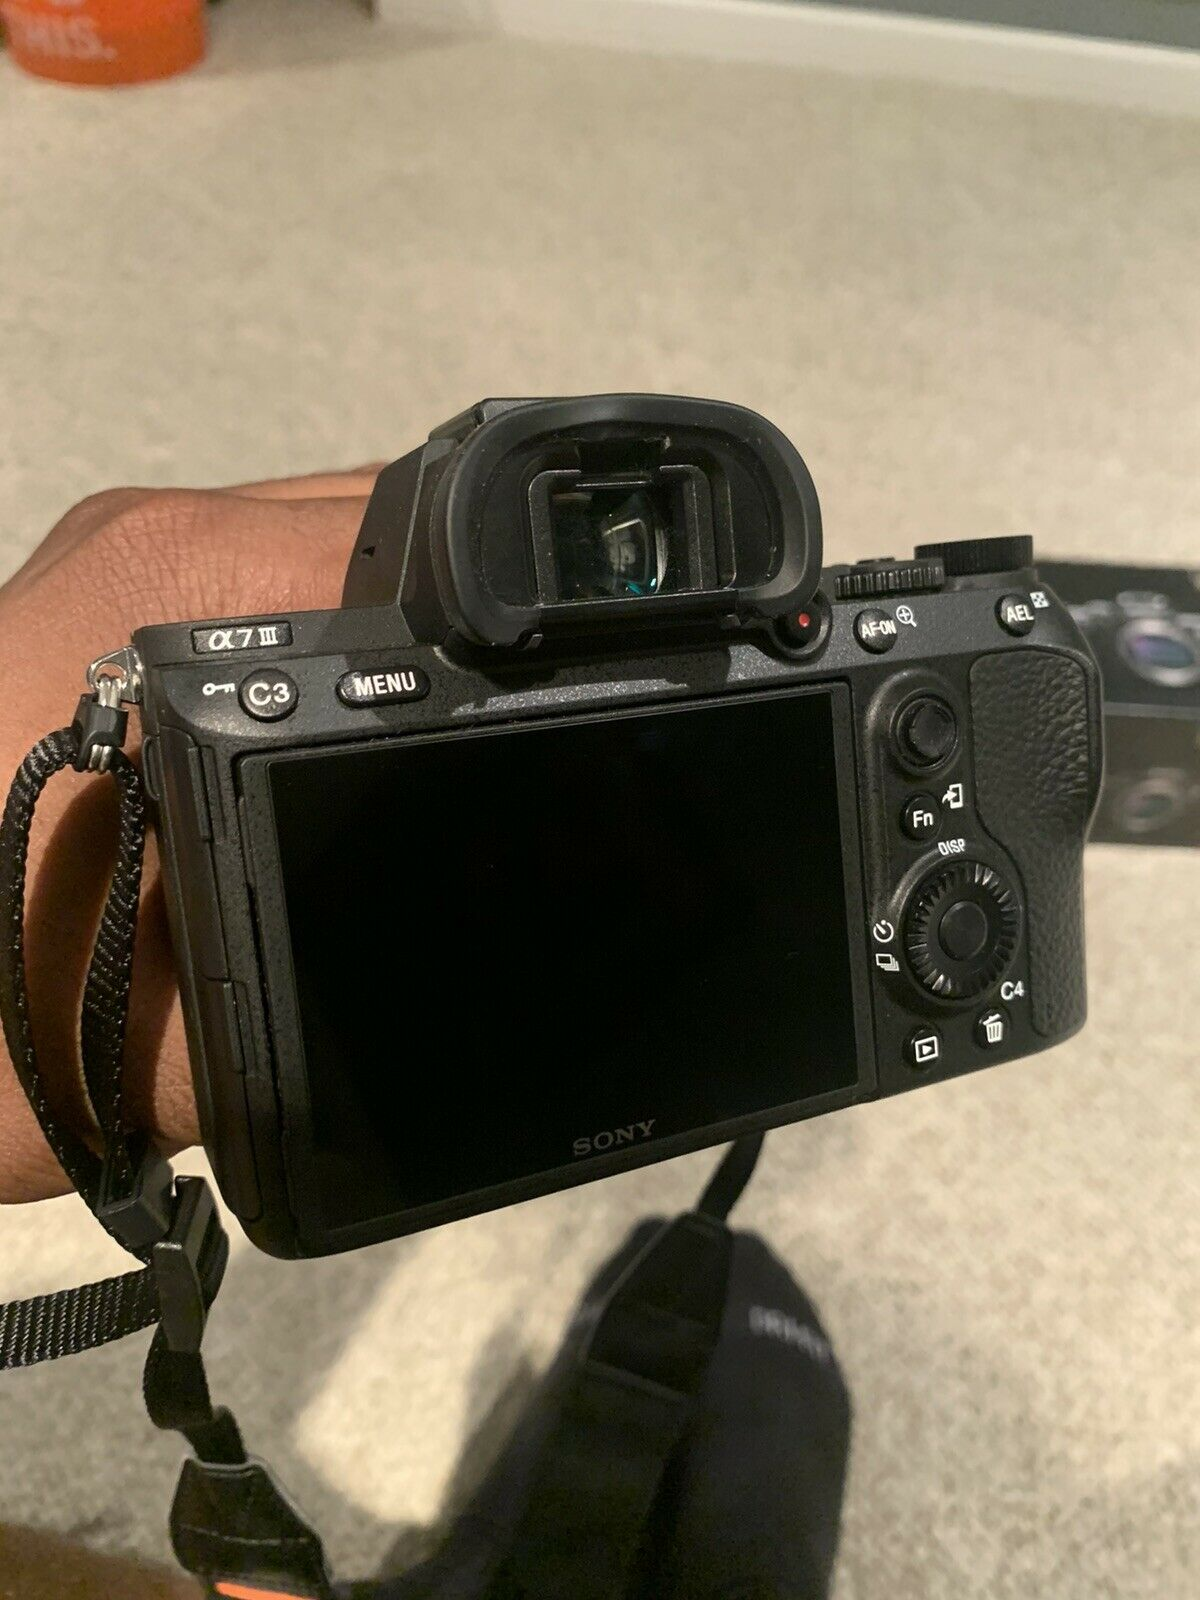 Sony Alpha A7 iii body with 24-70mm lens combo